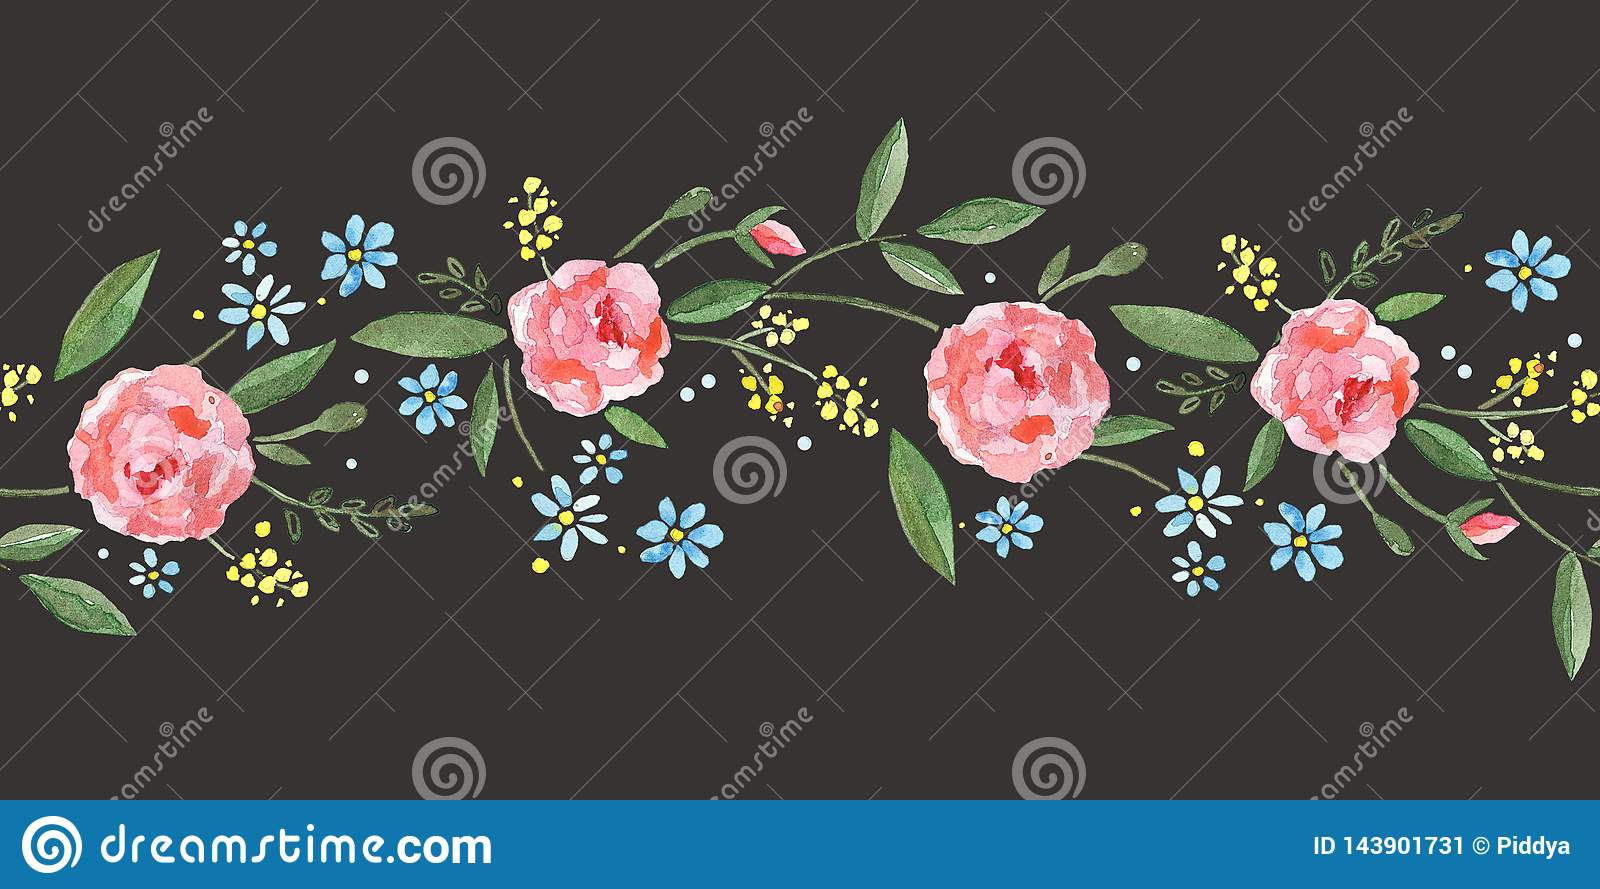 Seamless border with watercolor roses, leaves, branches and small blue flowers